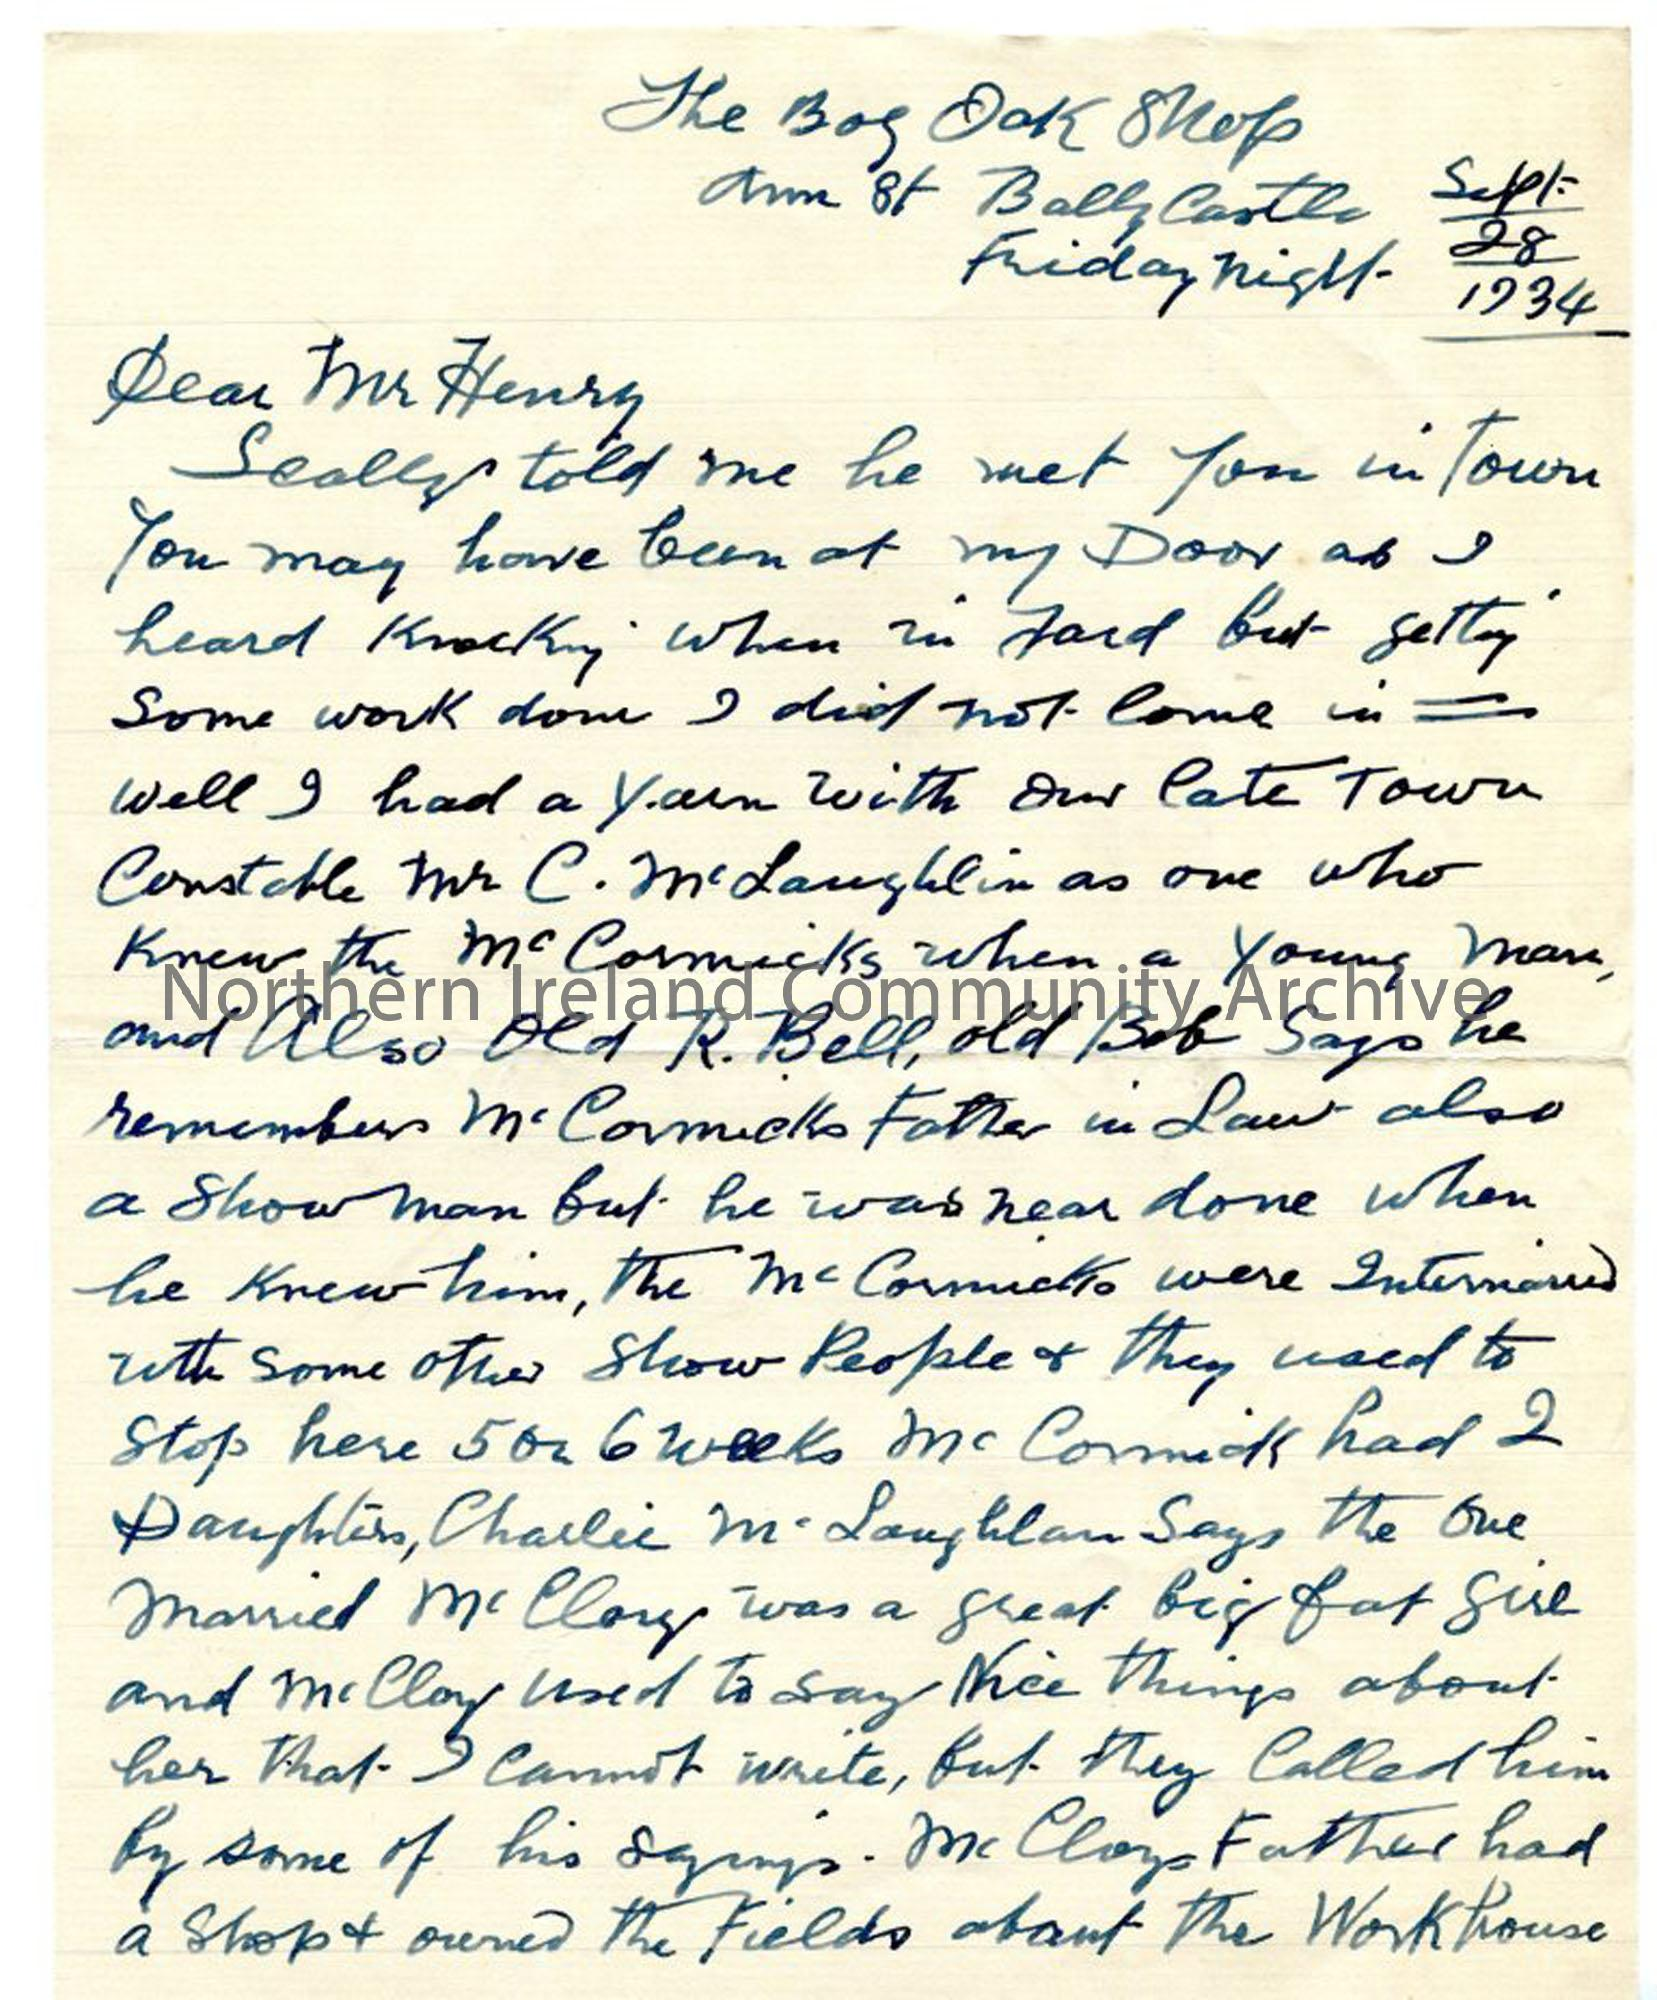 Letter, page 1 of 2, from John MacAulay, 28.9.1934